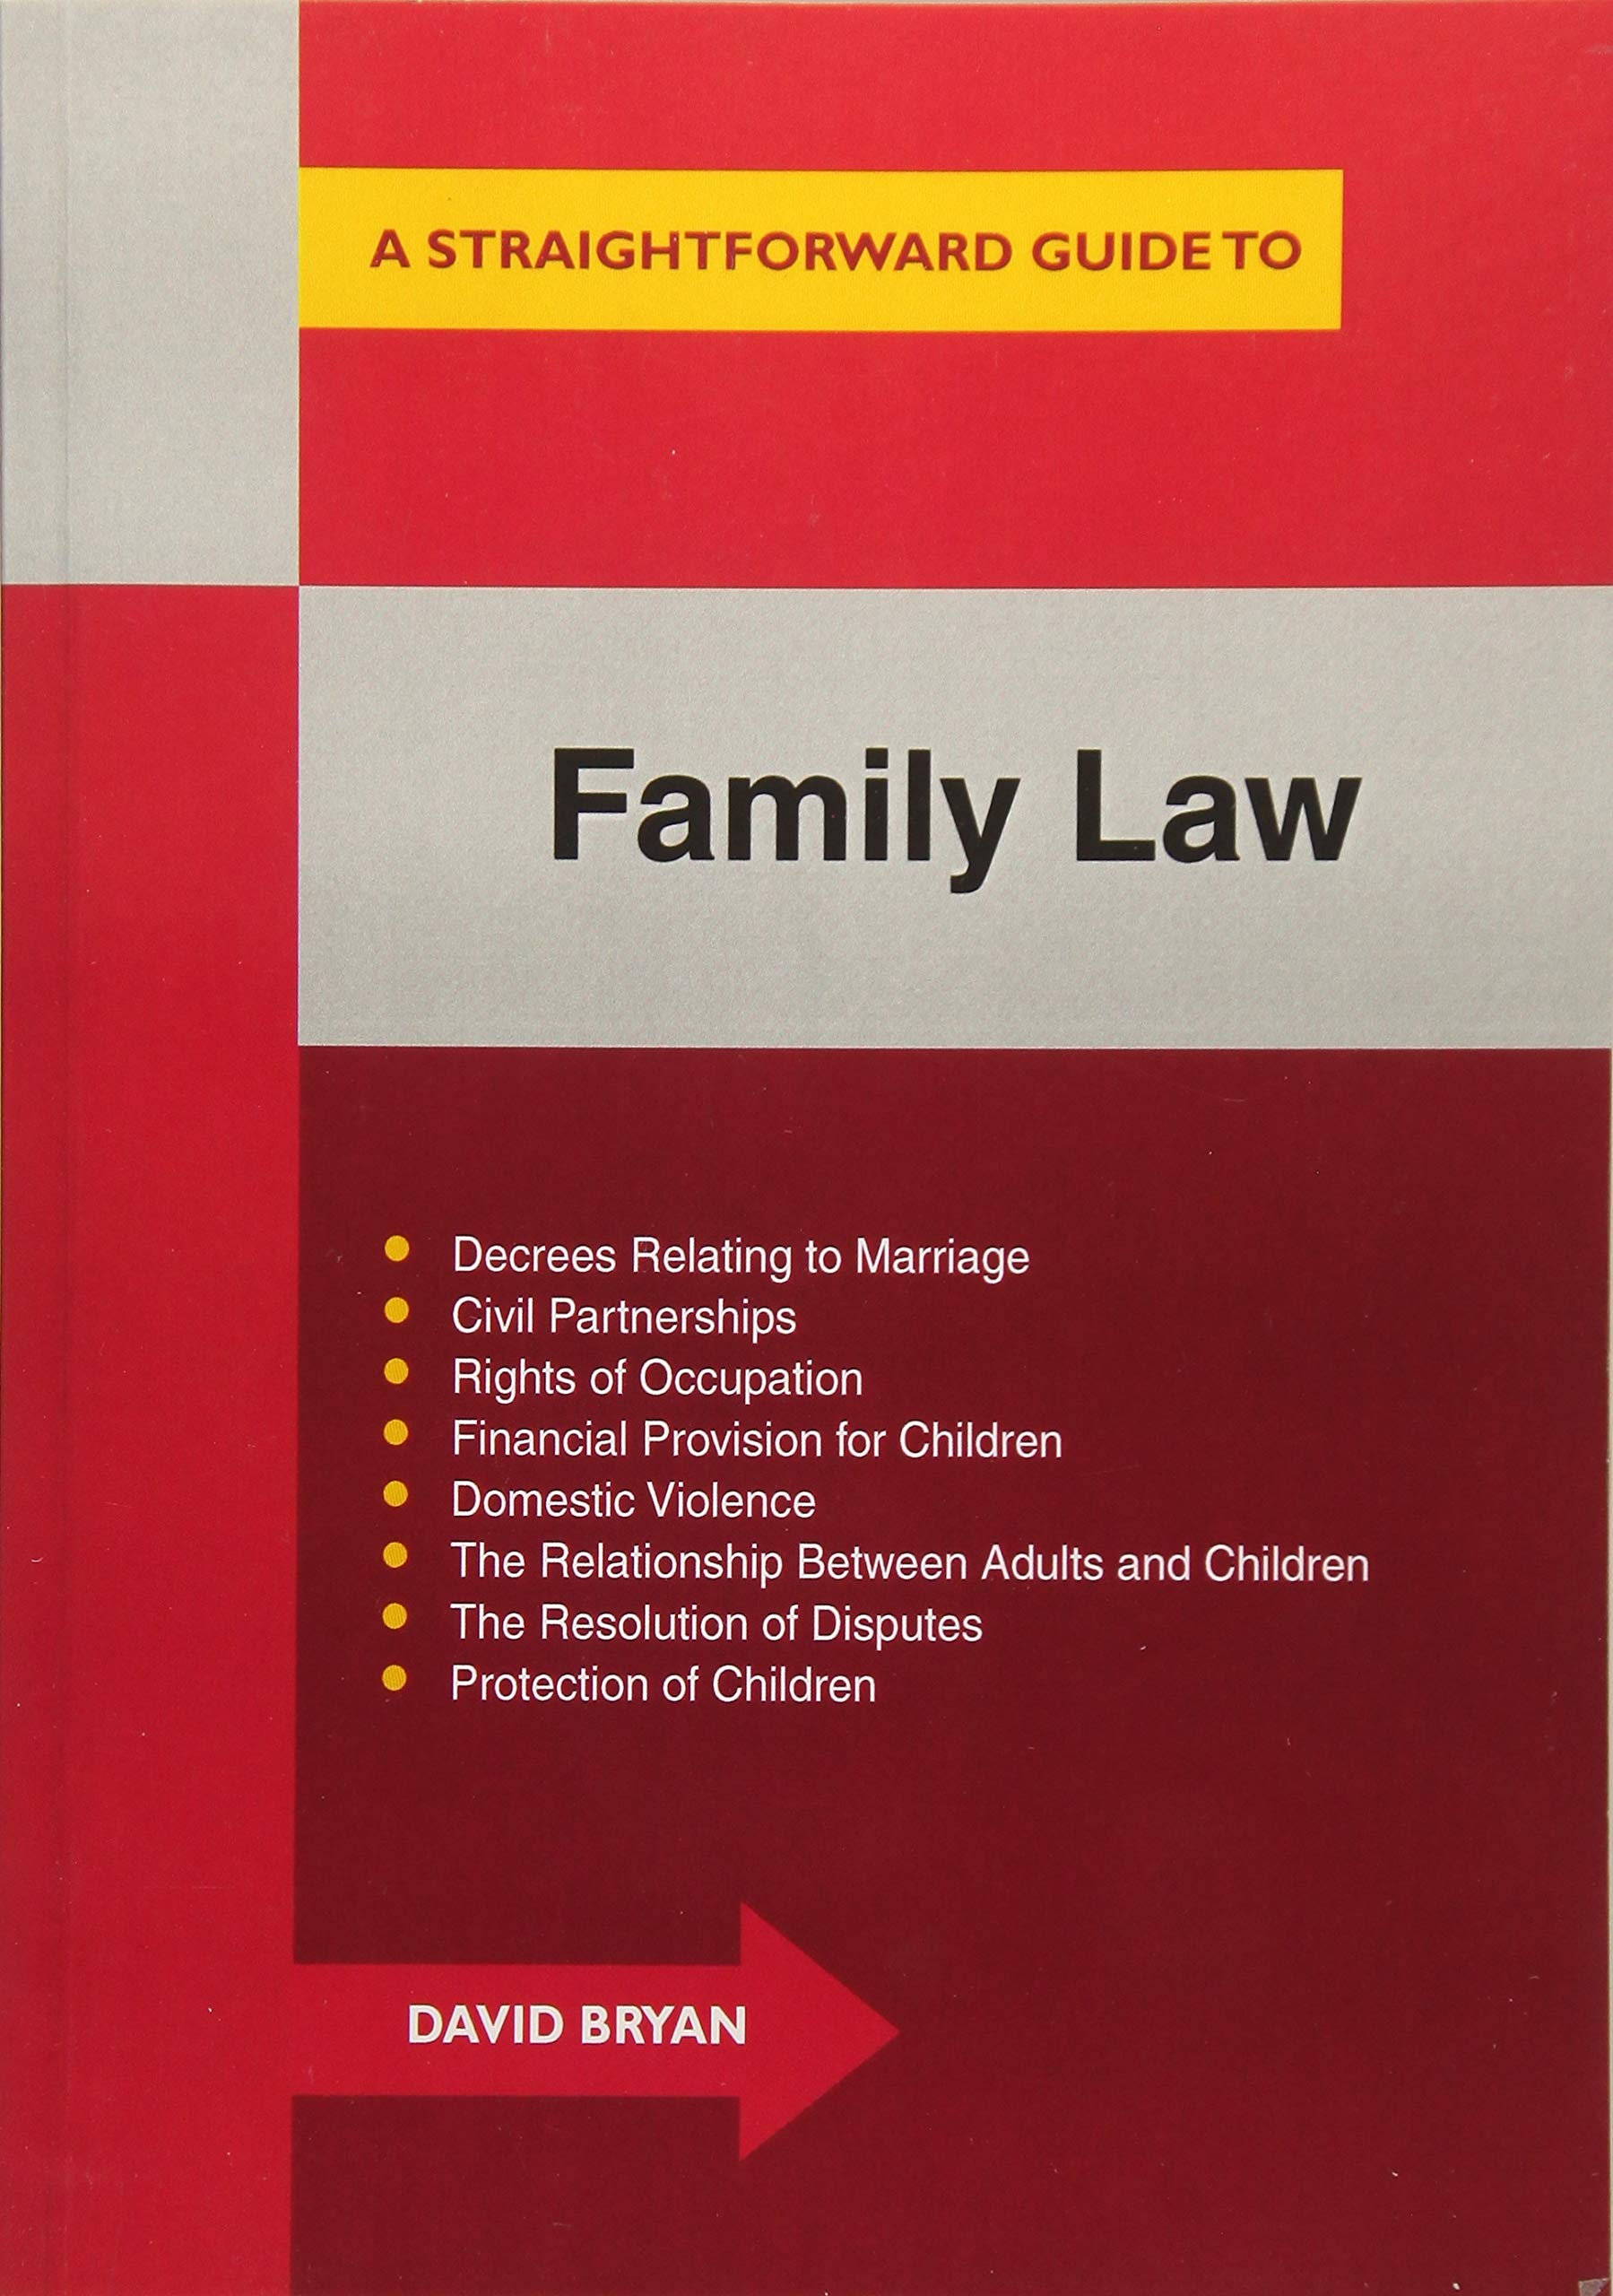 A Straightforward Guide to Family Law: A Concise Introduction to All Aspects of Family Law